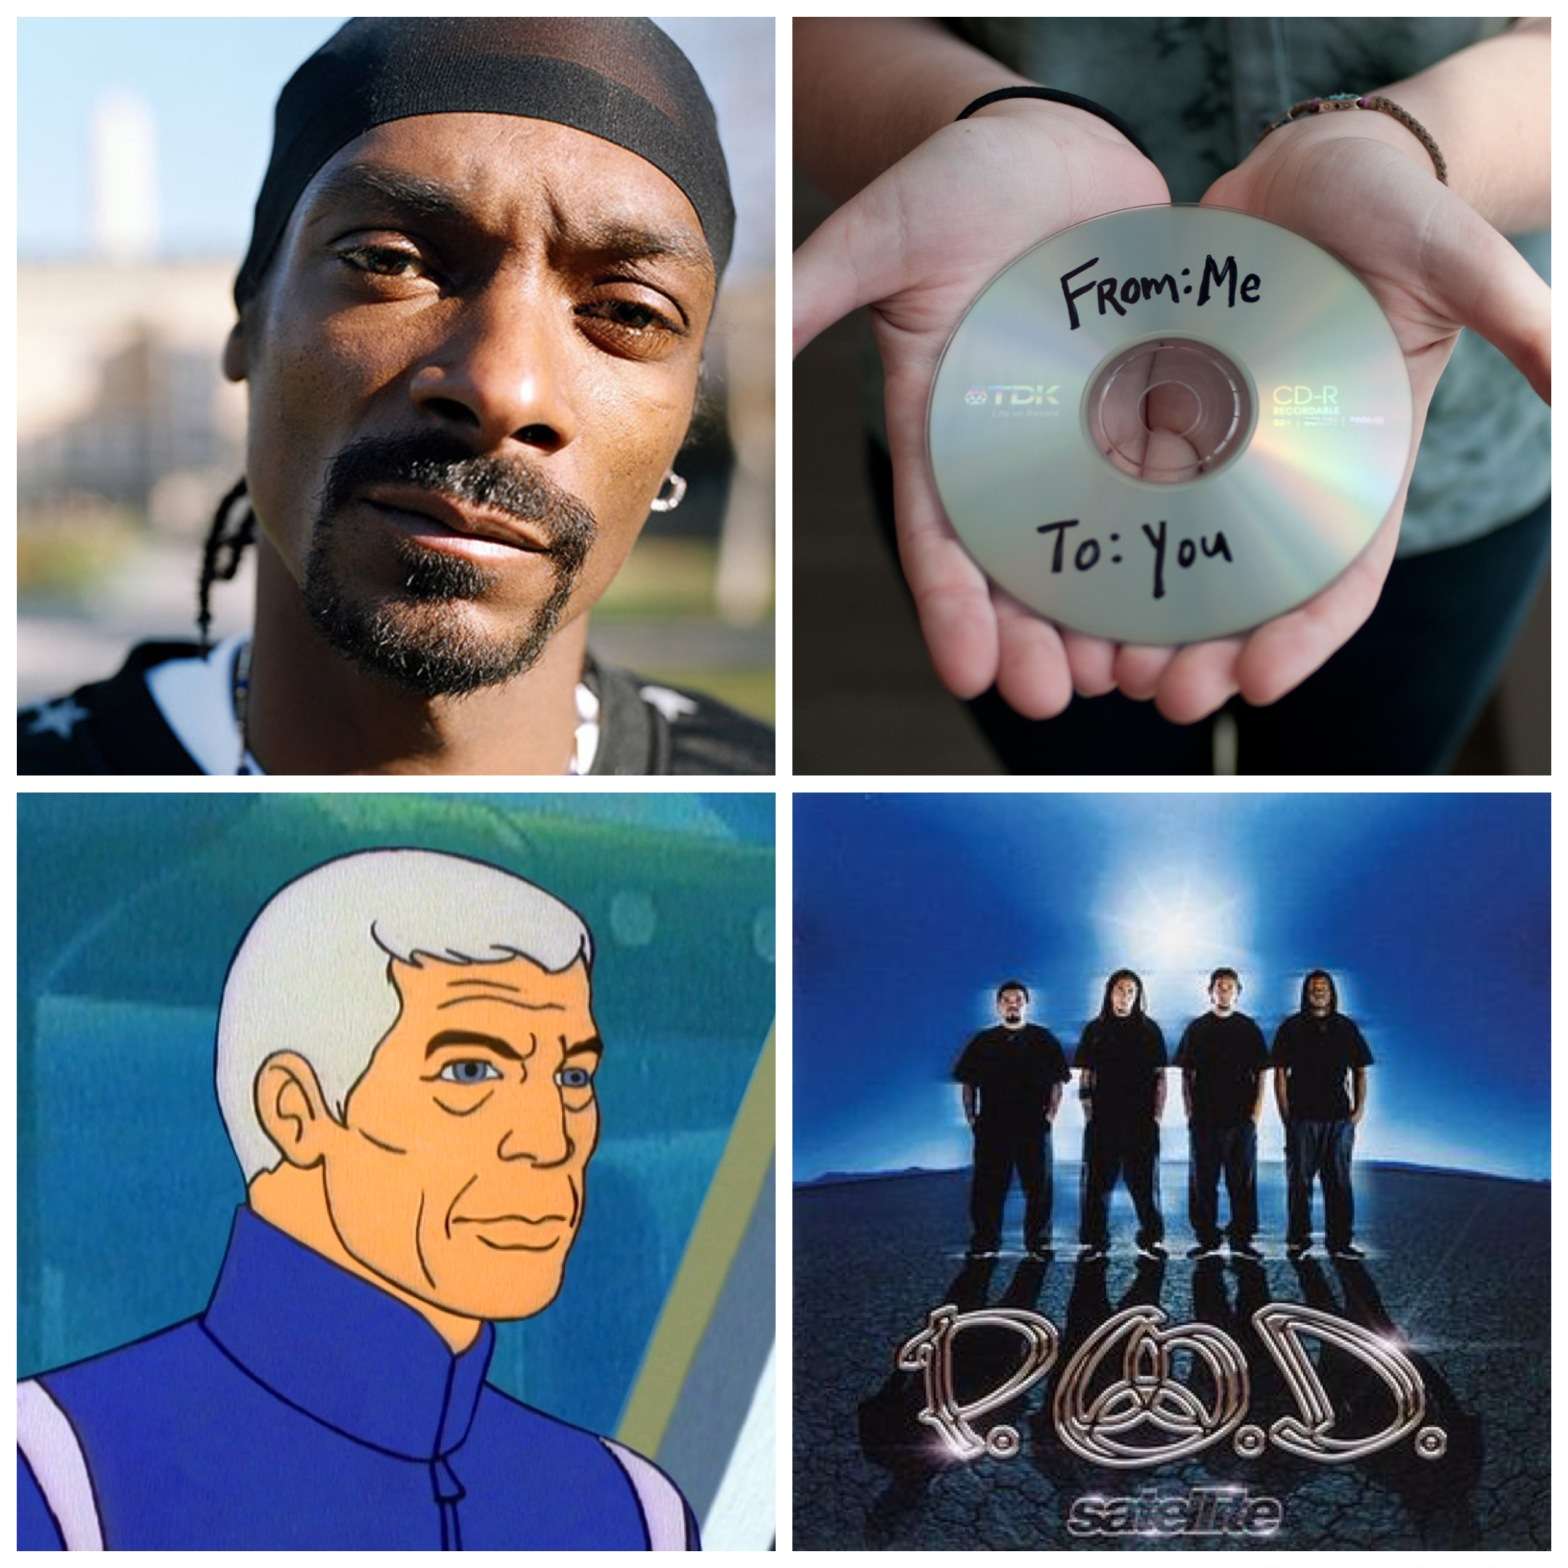 Snoop Dogg. Mix CDs. Captain Murphy from Sealab 2021. The band POD.